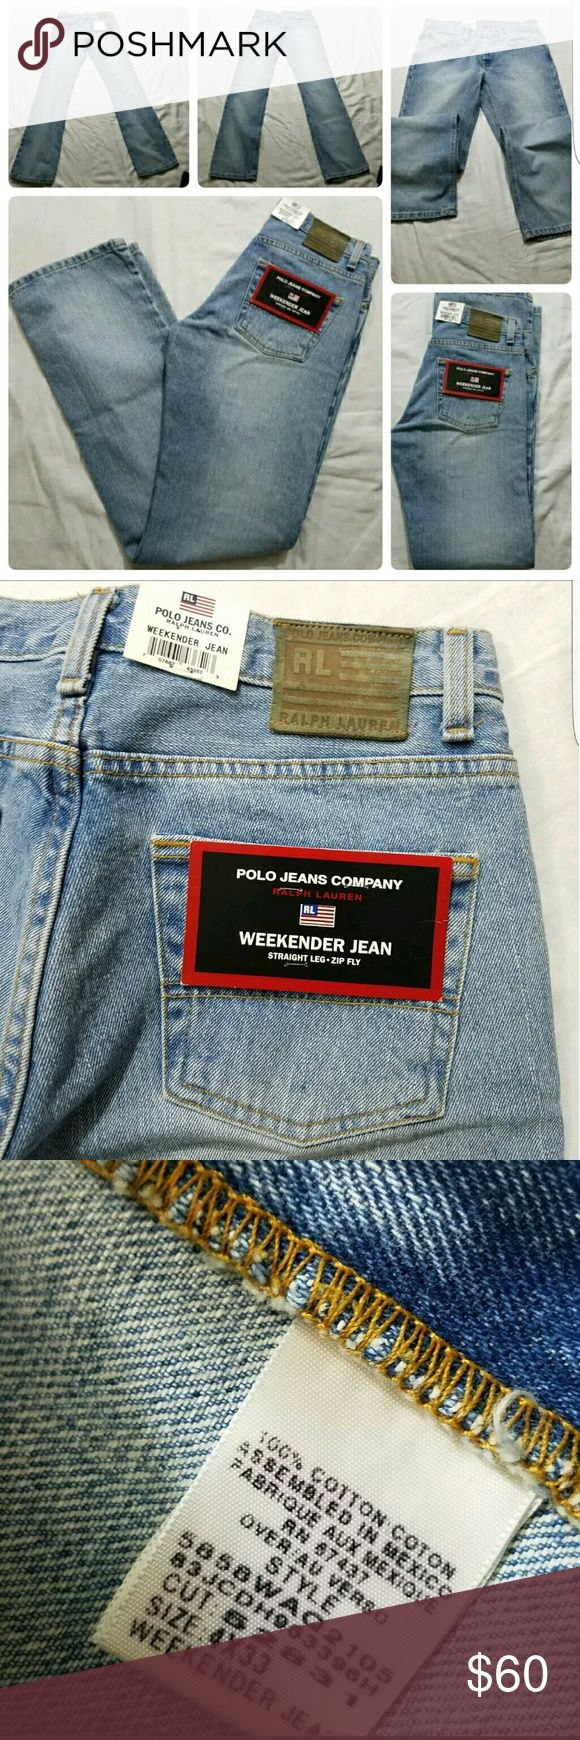 New Vintage Womens Polo Jeans Co Weekender Sz 4x33 Vintage New With Tags Womens Polo Jeans Co Weekender Straight Leg Light Wash Sz 4×33 New With Tags Feel free to ask any questions and make offers Polo by Ralph Lauren Jeans Straight Leg